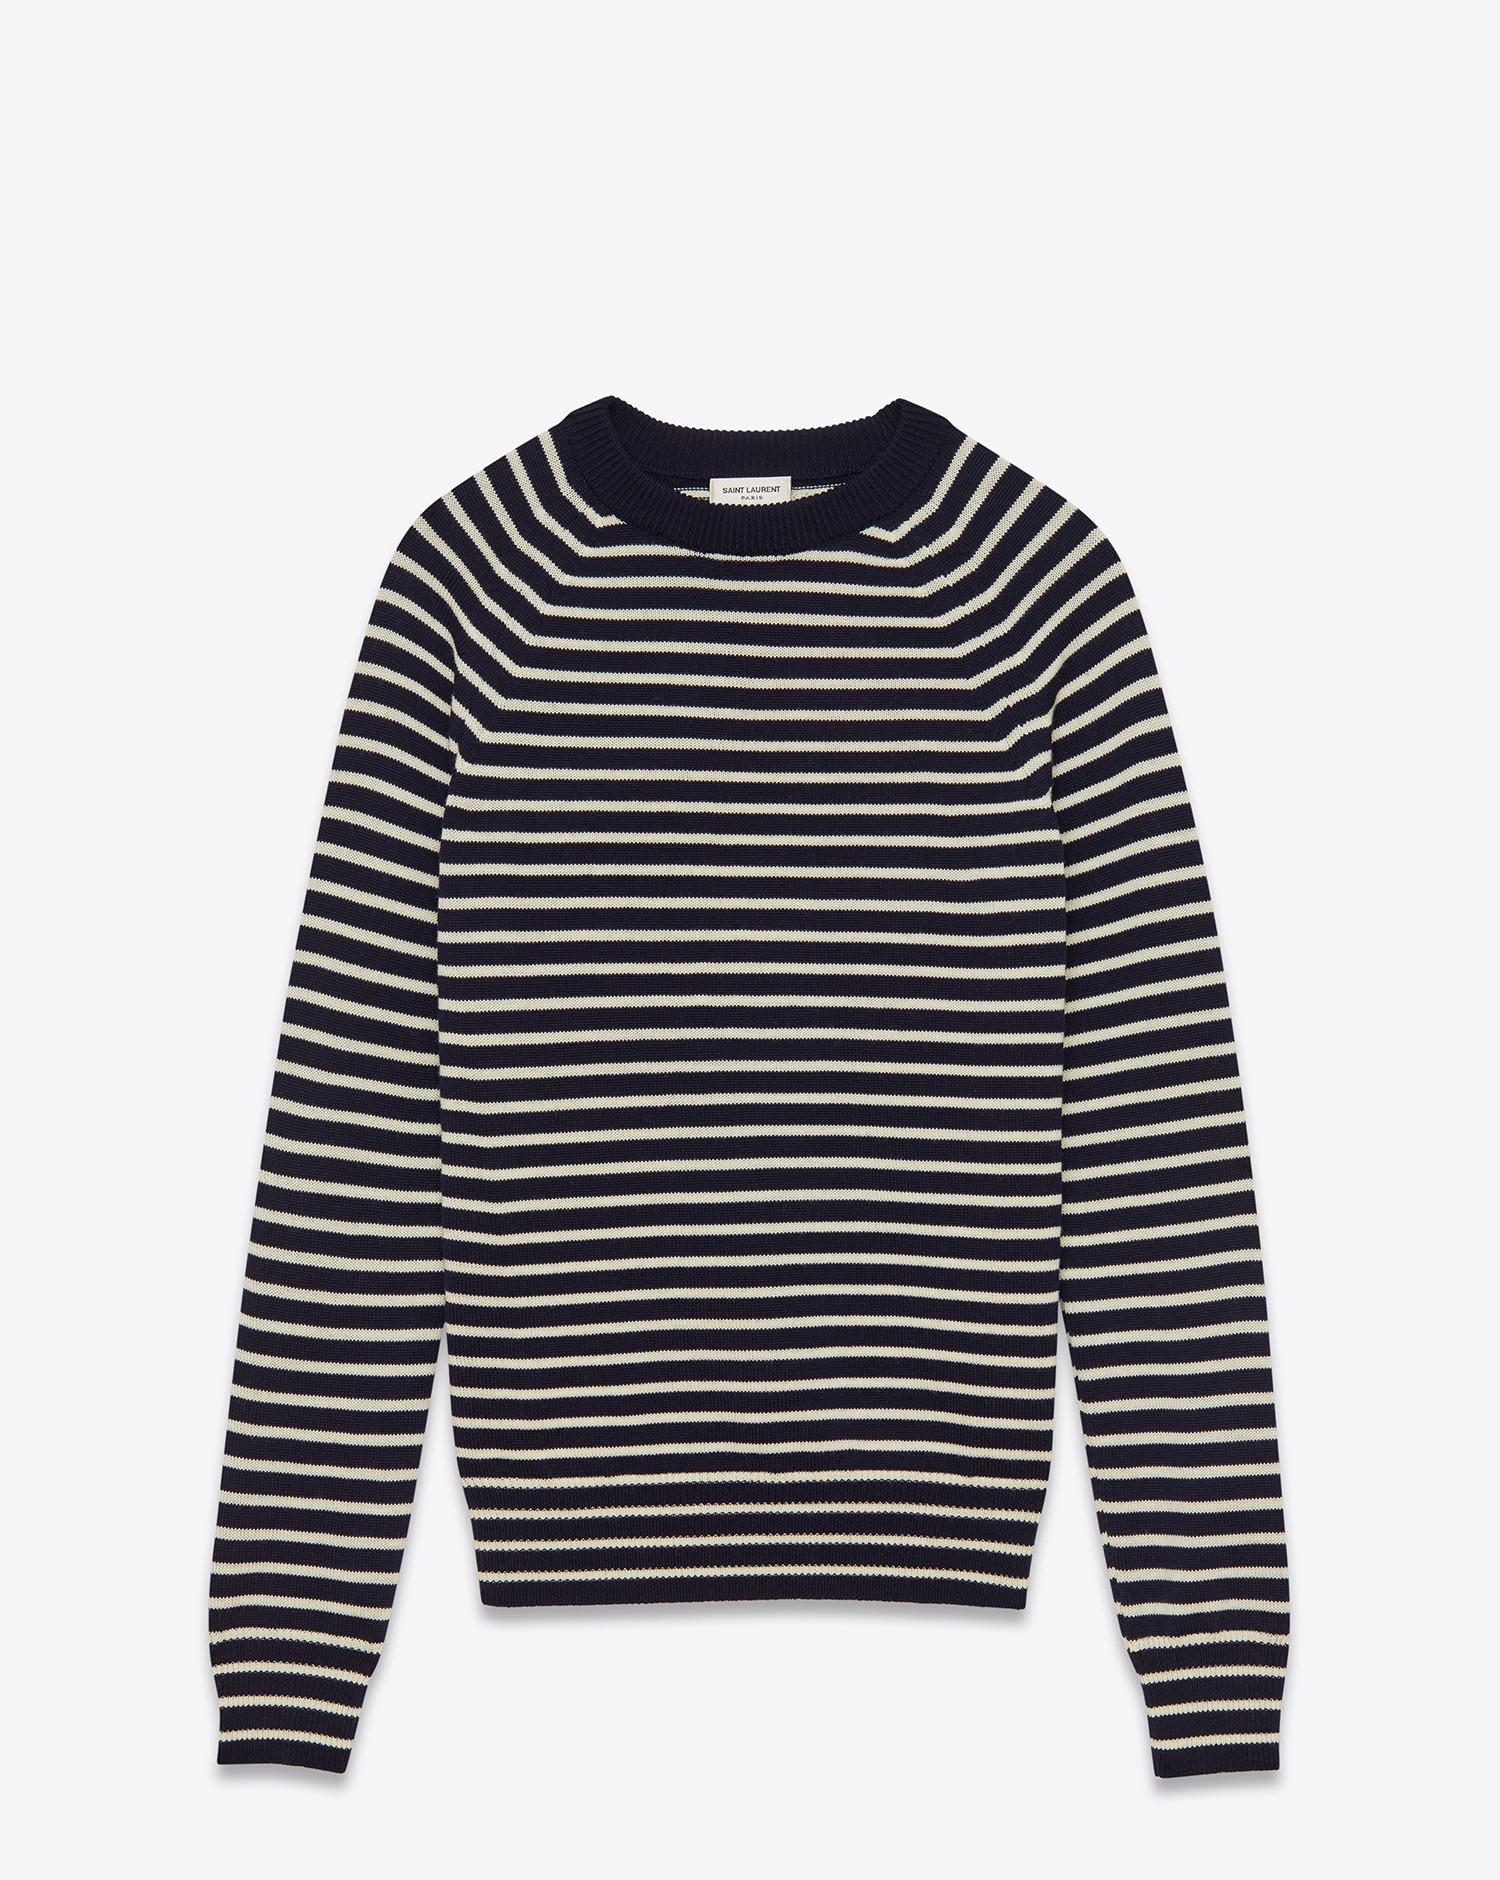 Saint laurent Crewneck Sweater In Navy And White Striped Merino ...